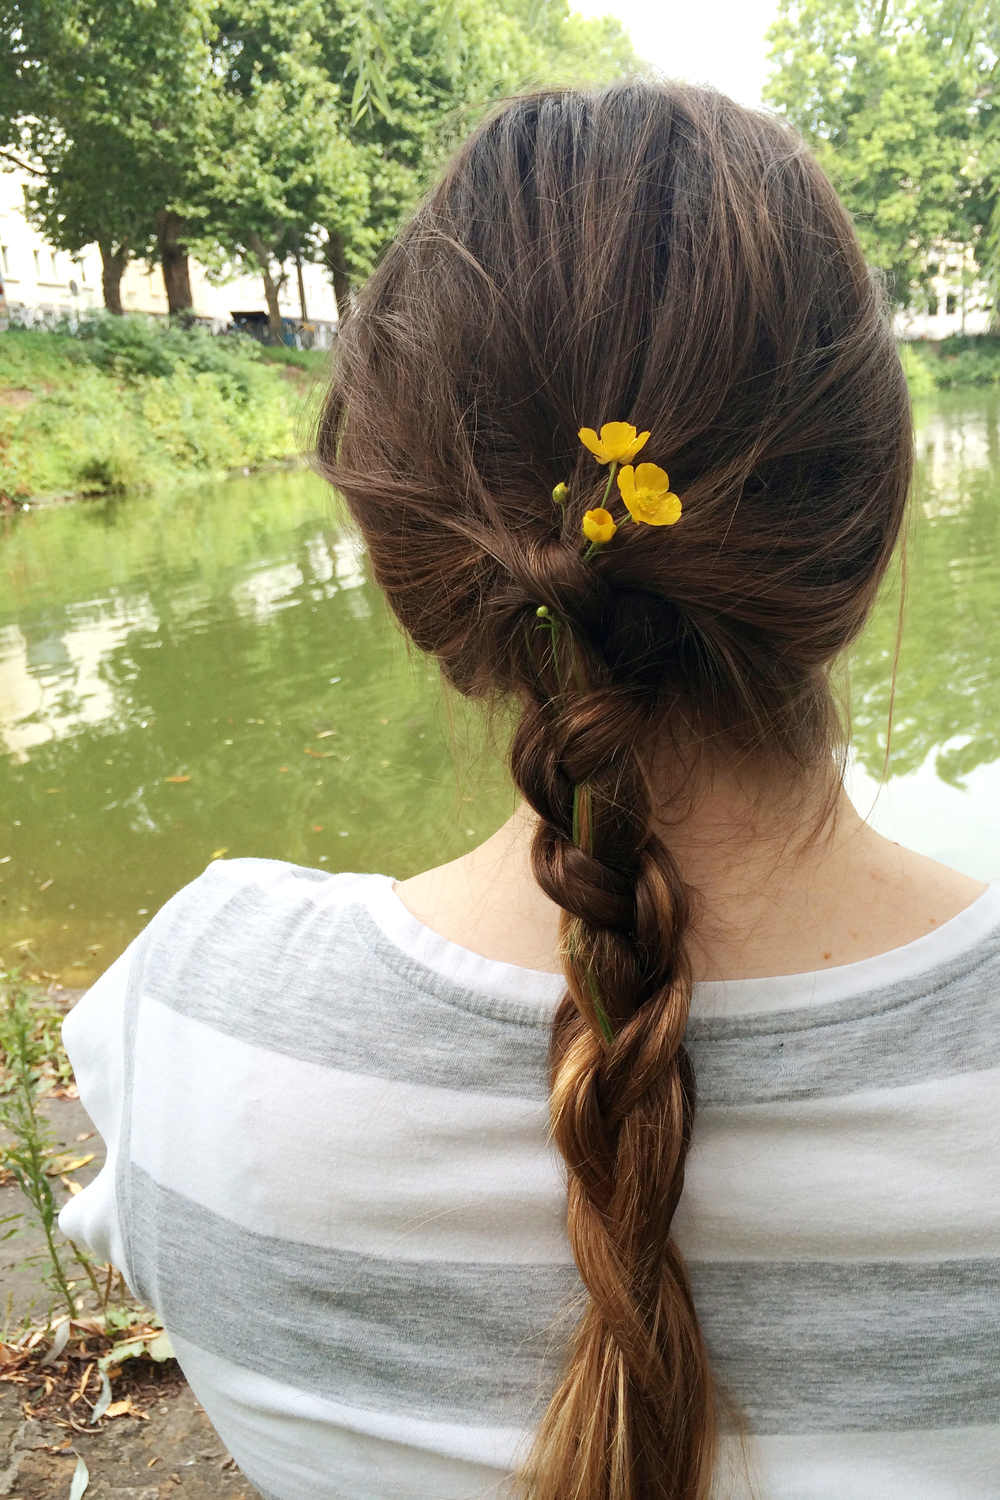 I also got my hair braided with flowers :)